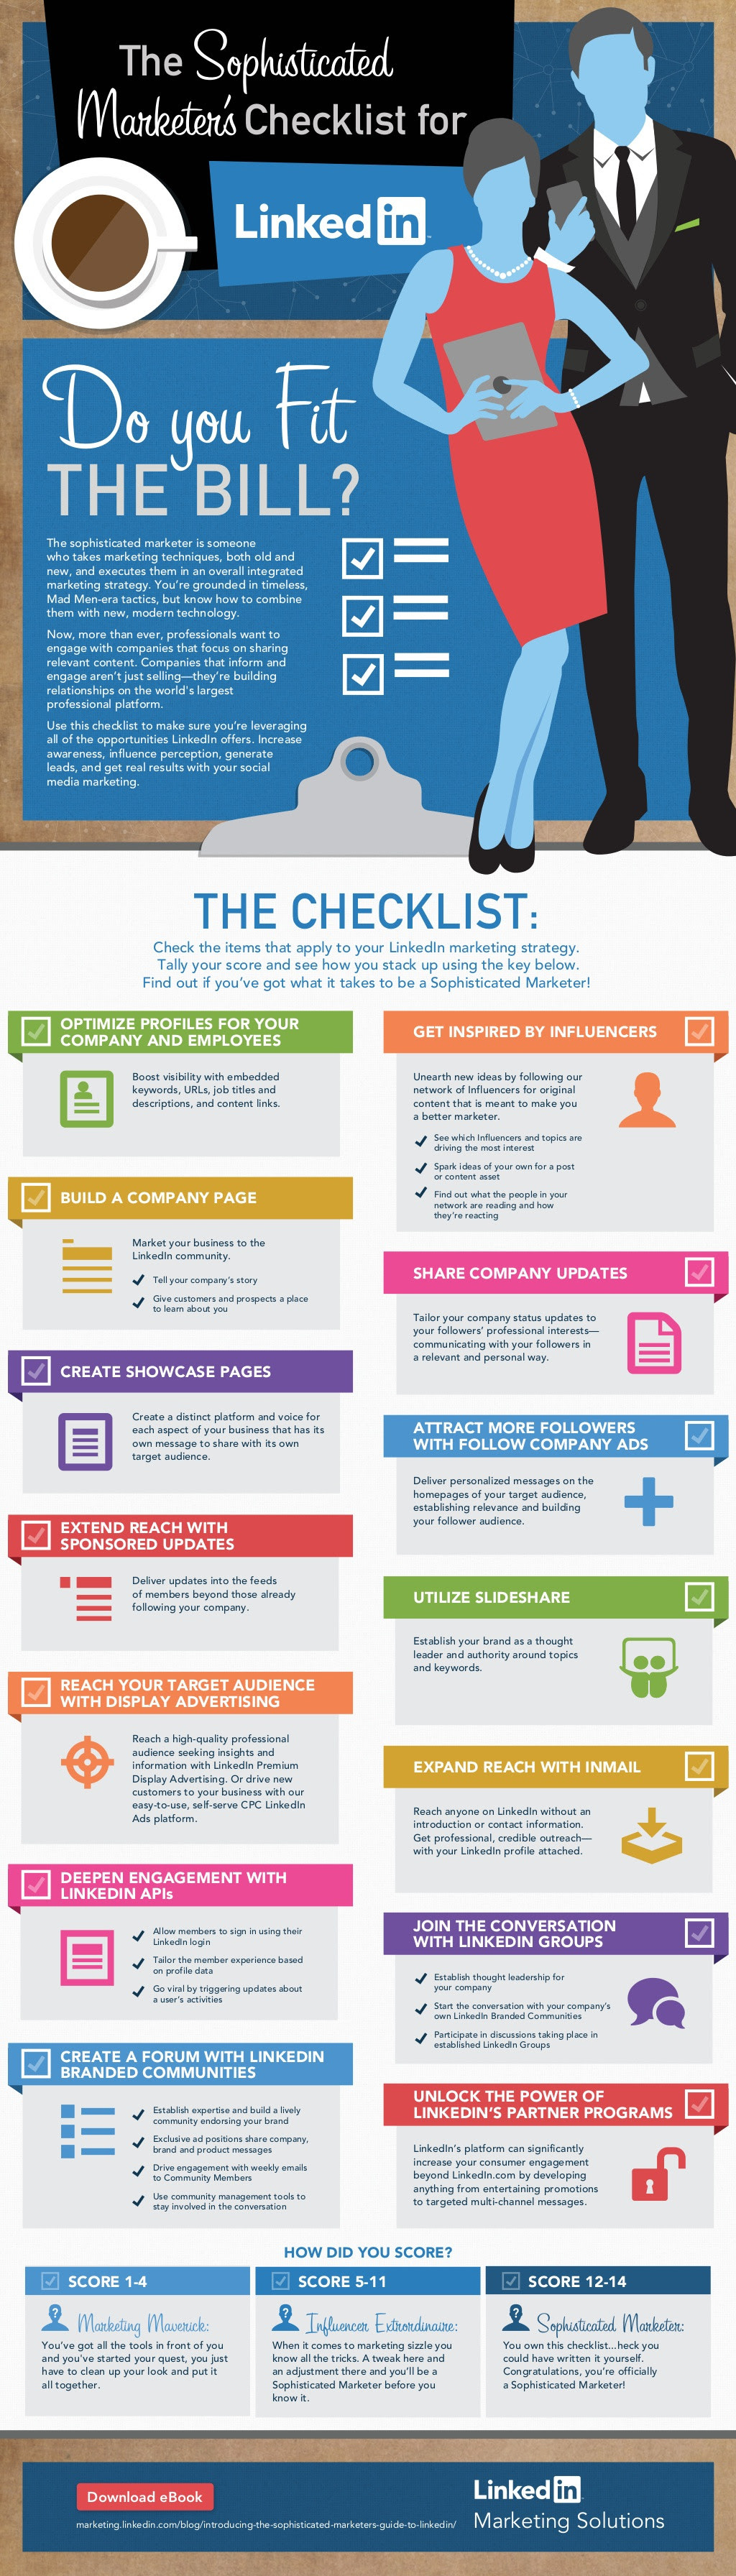 The Sophisticated Marketer's Checklist: Do You Fit The Bill? - infographic